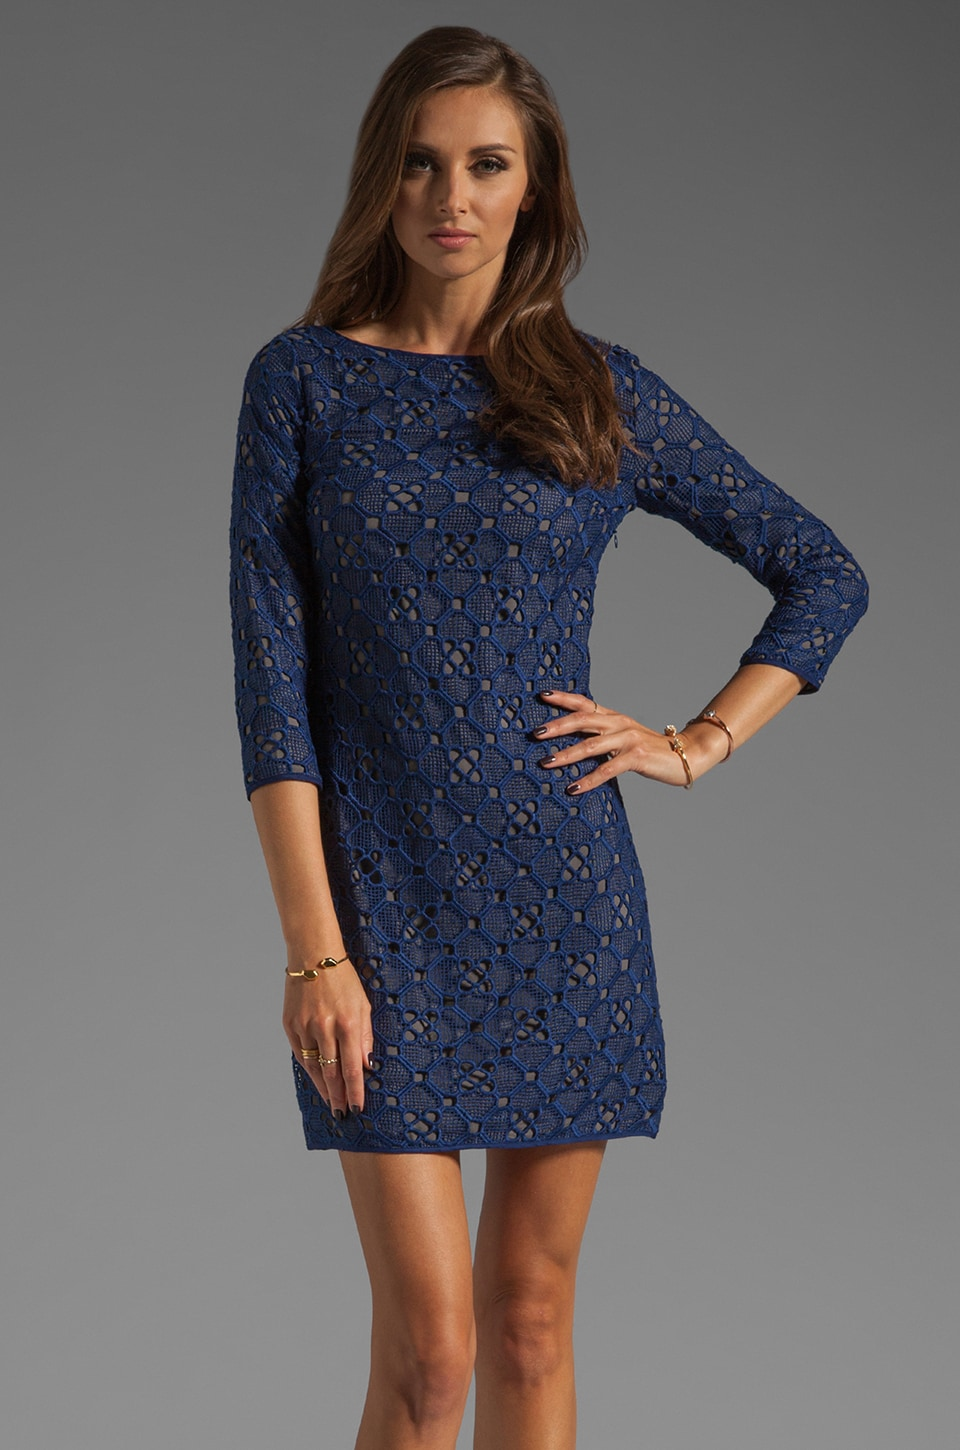 Catherine Malandrino All Over Embroidered Dress in Mineral Multi